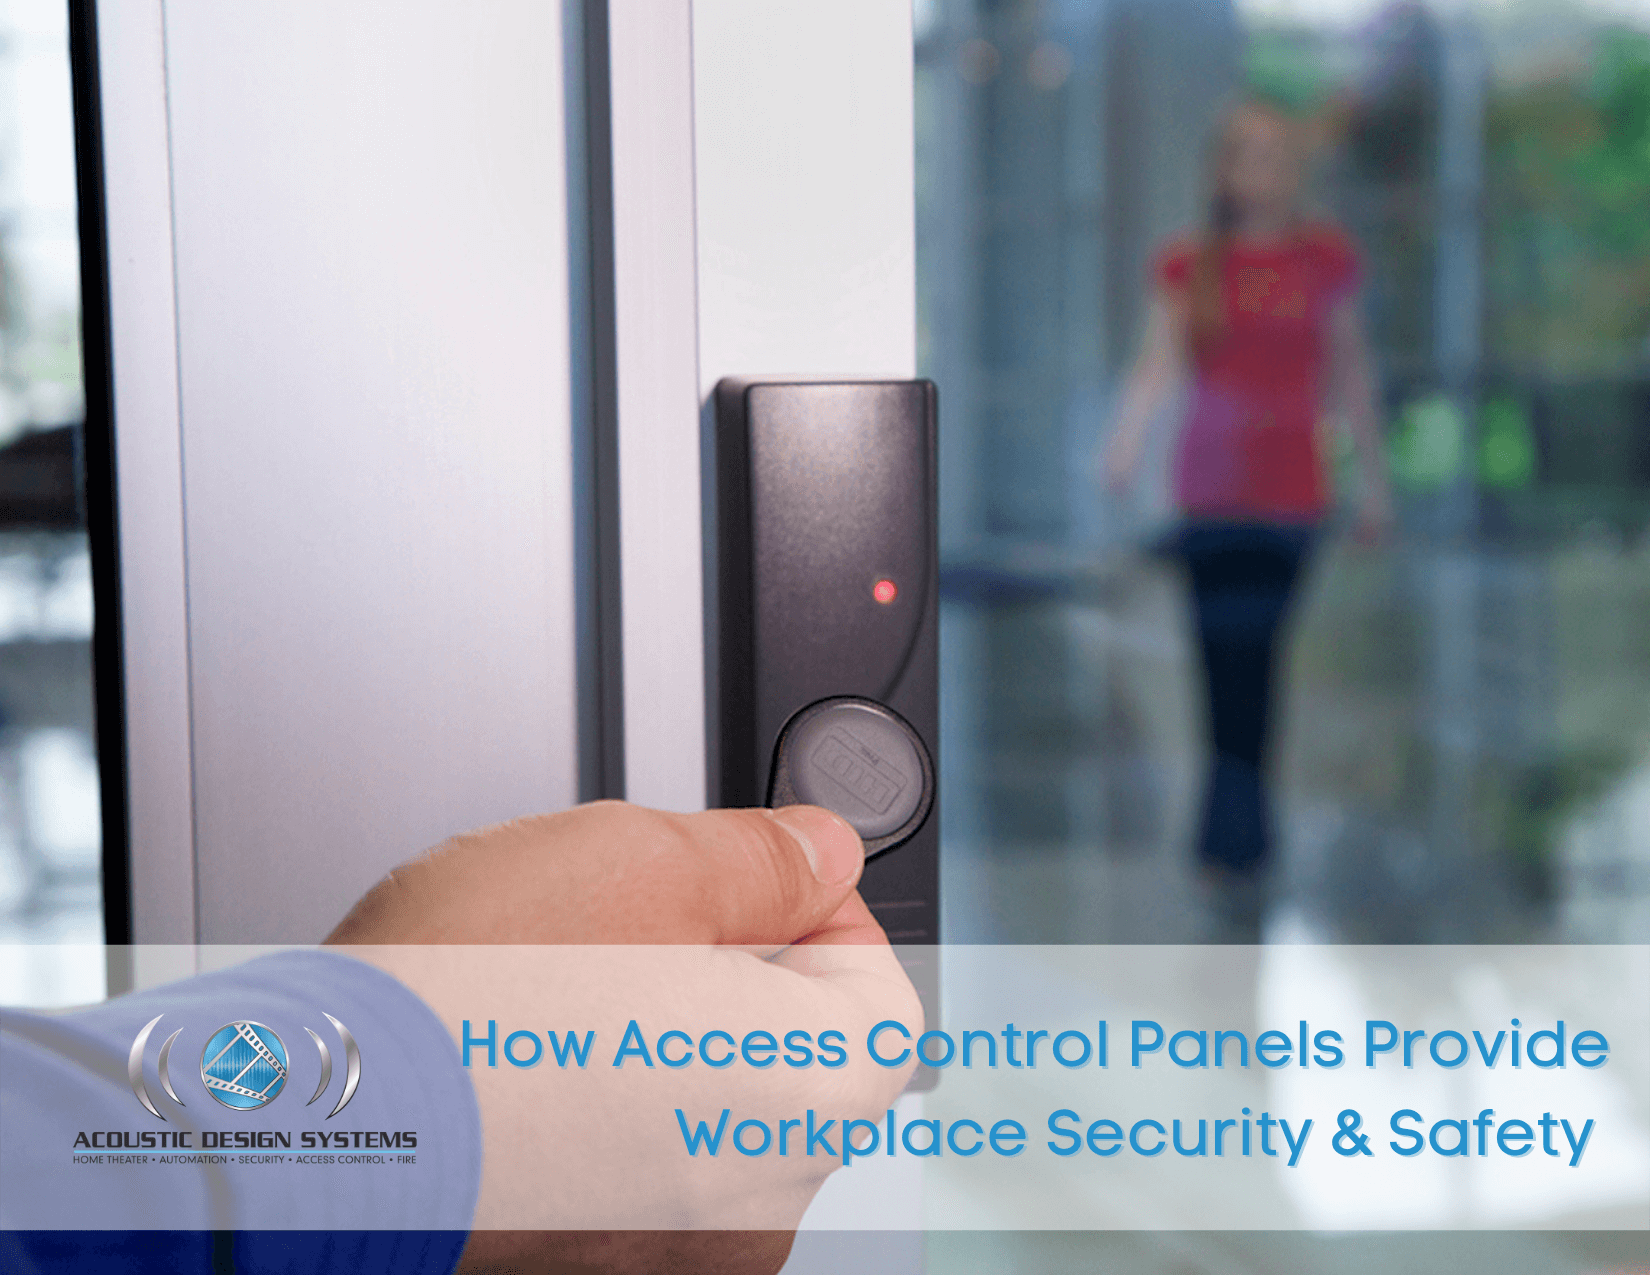 How Access Control Panels Provide Workplace Security & Safety